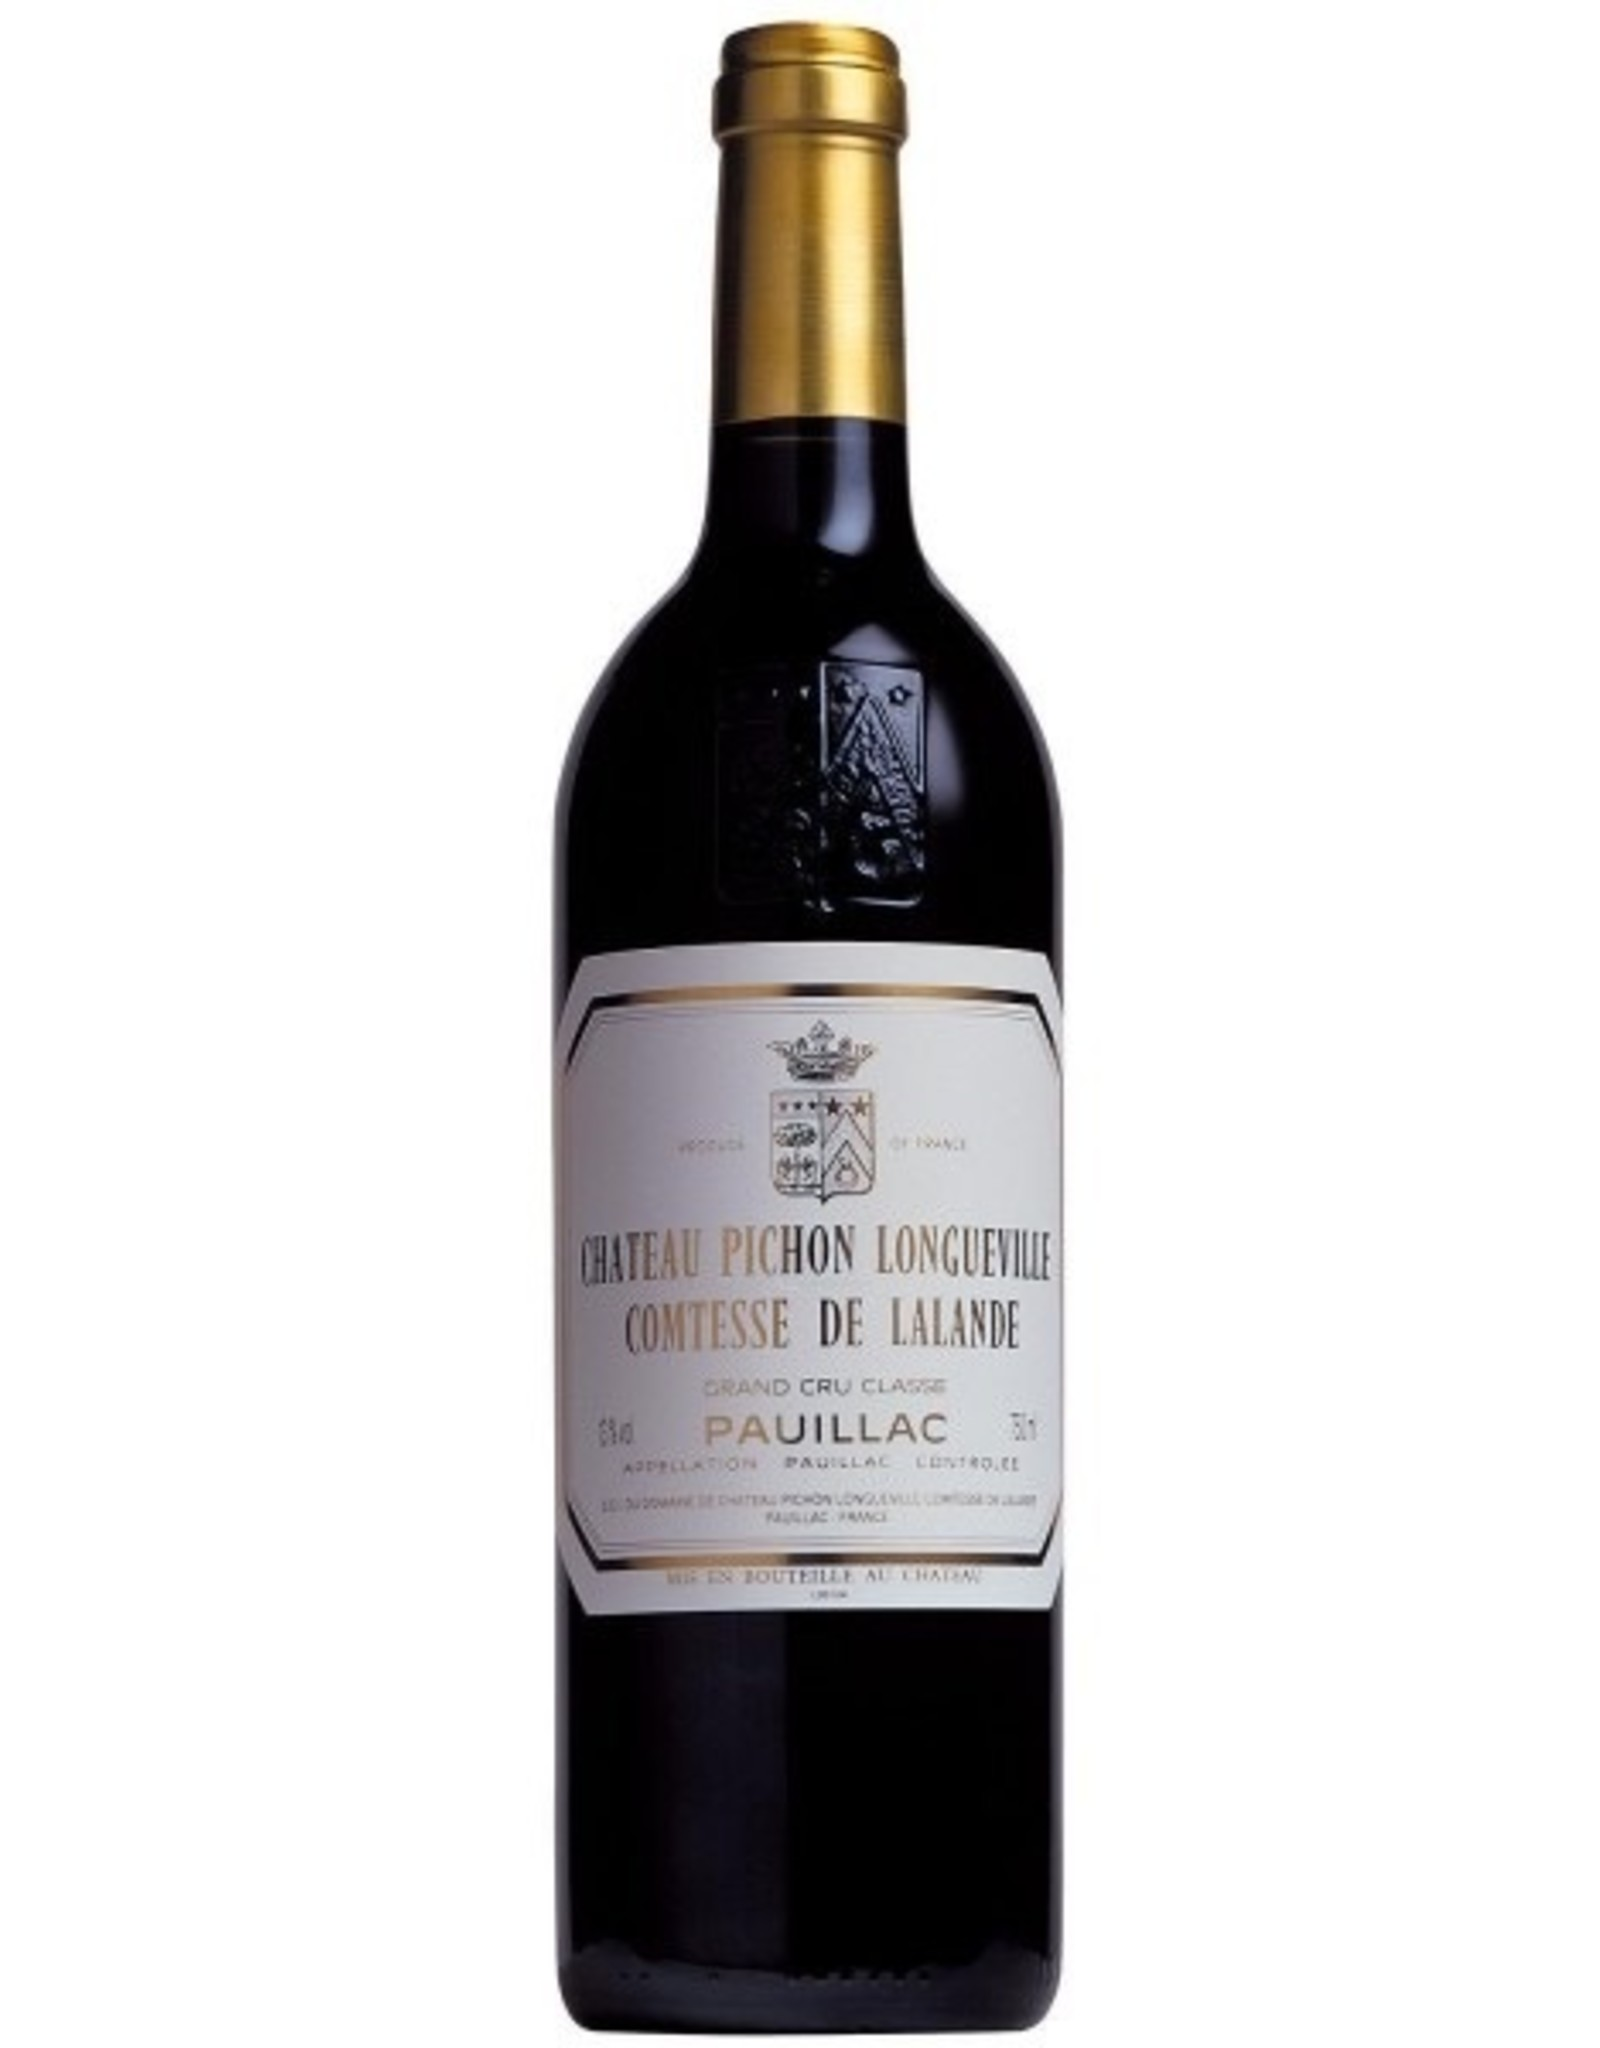 Red Wine 2015, Chateau Pichon-Longueville Grand Cru Classe, Red Bordeaux Blend, Pauillac, Bordeaux, France, 13.5% Alc, CTnr